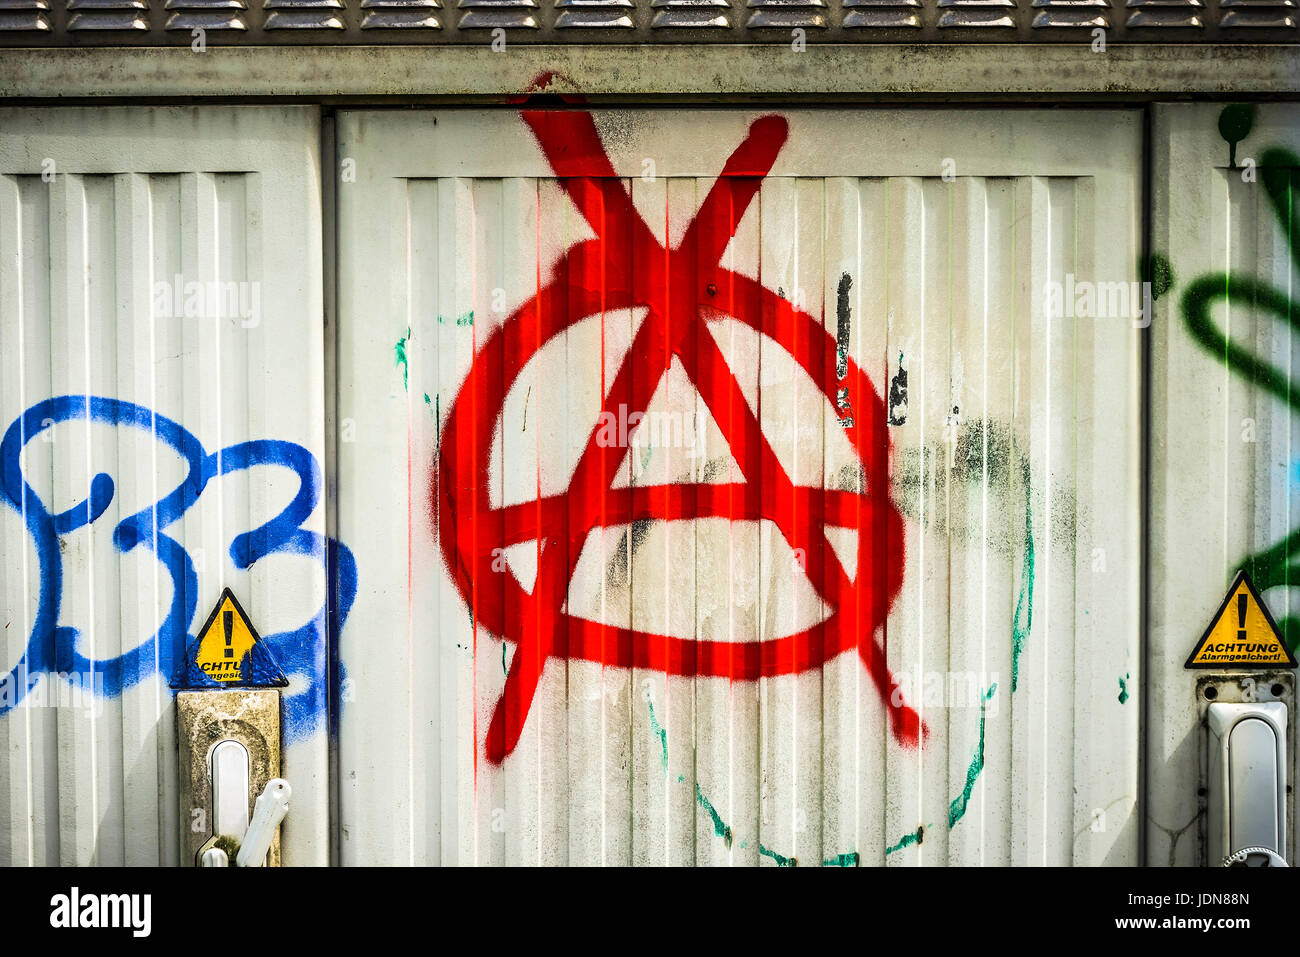 Anarchy symbol on a distributor box, Anarchie-Symbol auf einem Verteilerkasten - Stock Image